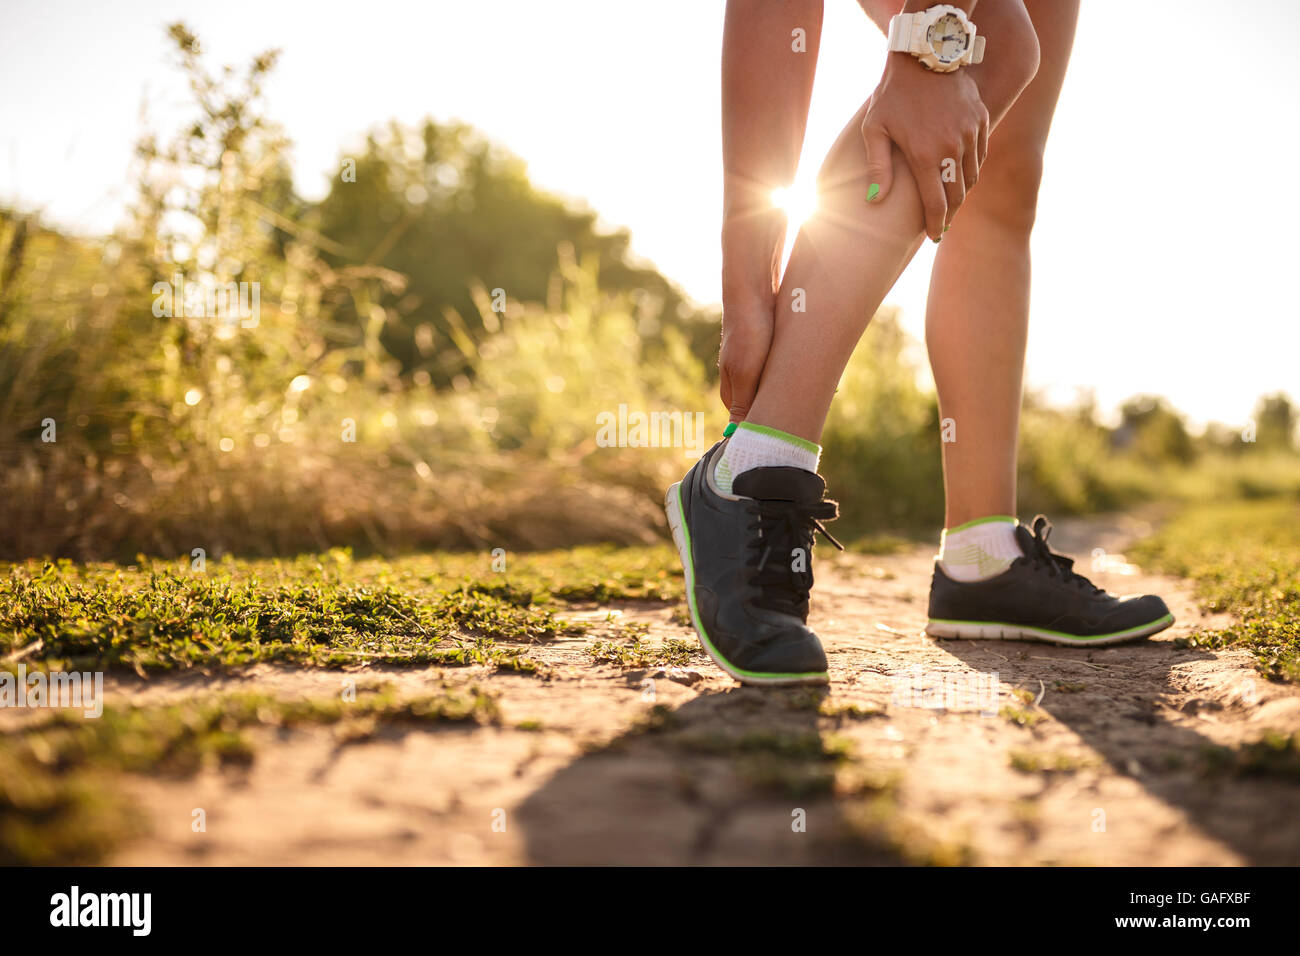 woman runner hold her sports injured leg - Stock Image